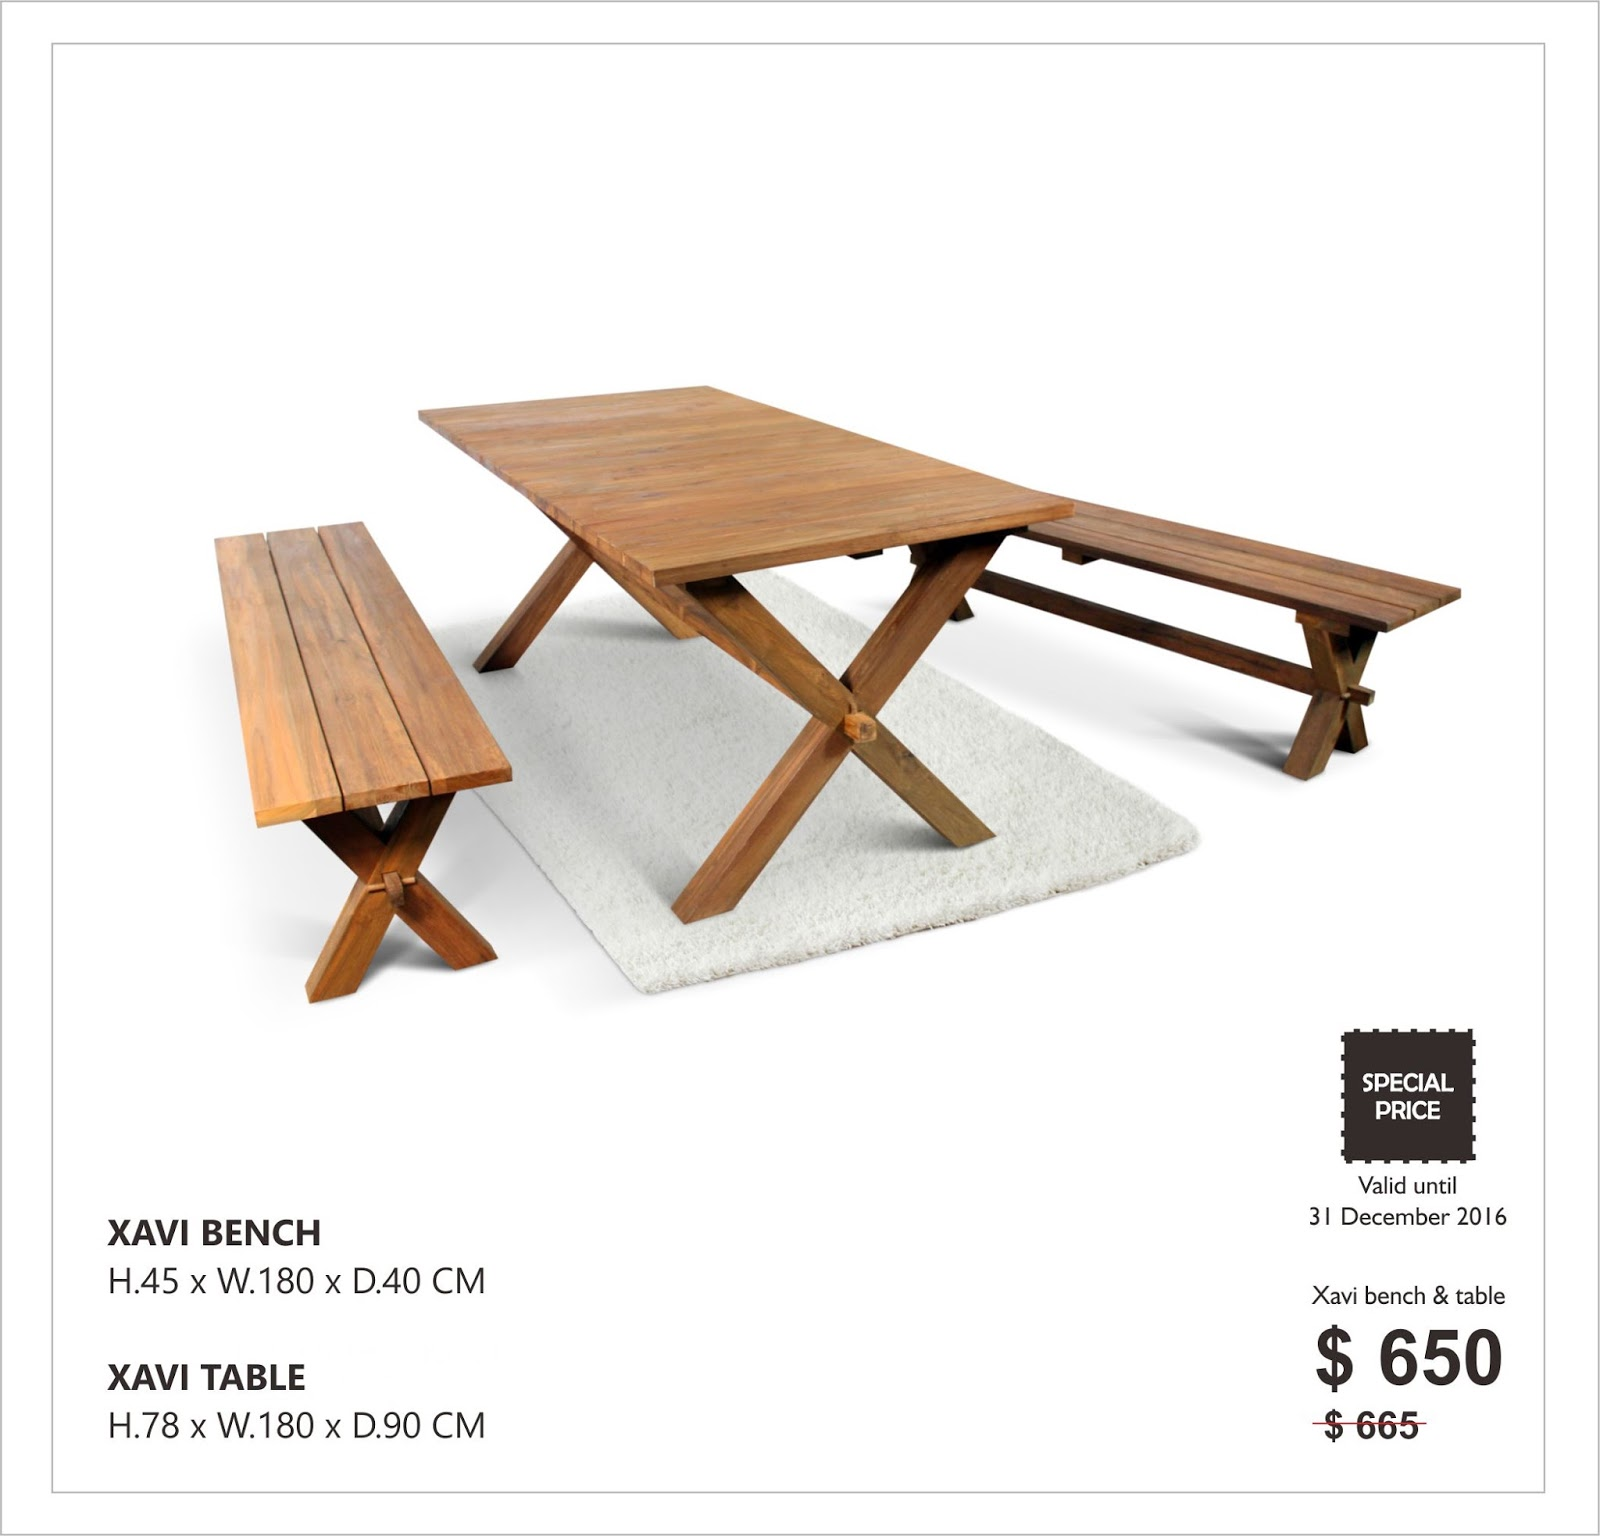 Legal Teak Wood Made By Experienced Indonesia Furniture, Beautifully  Crafted In Quality With Classic And Modern Styling Techniques Available.